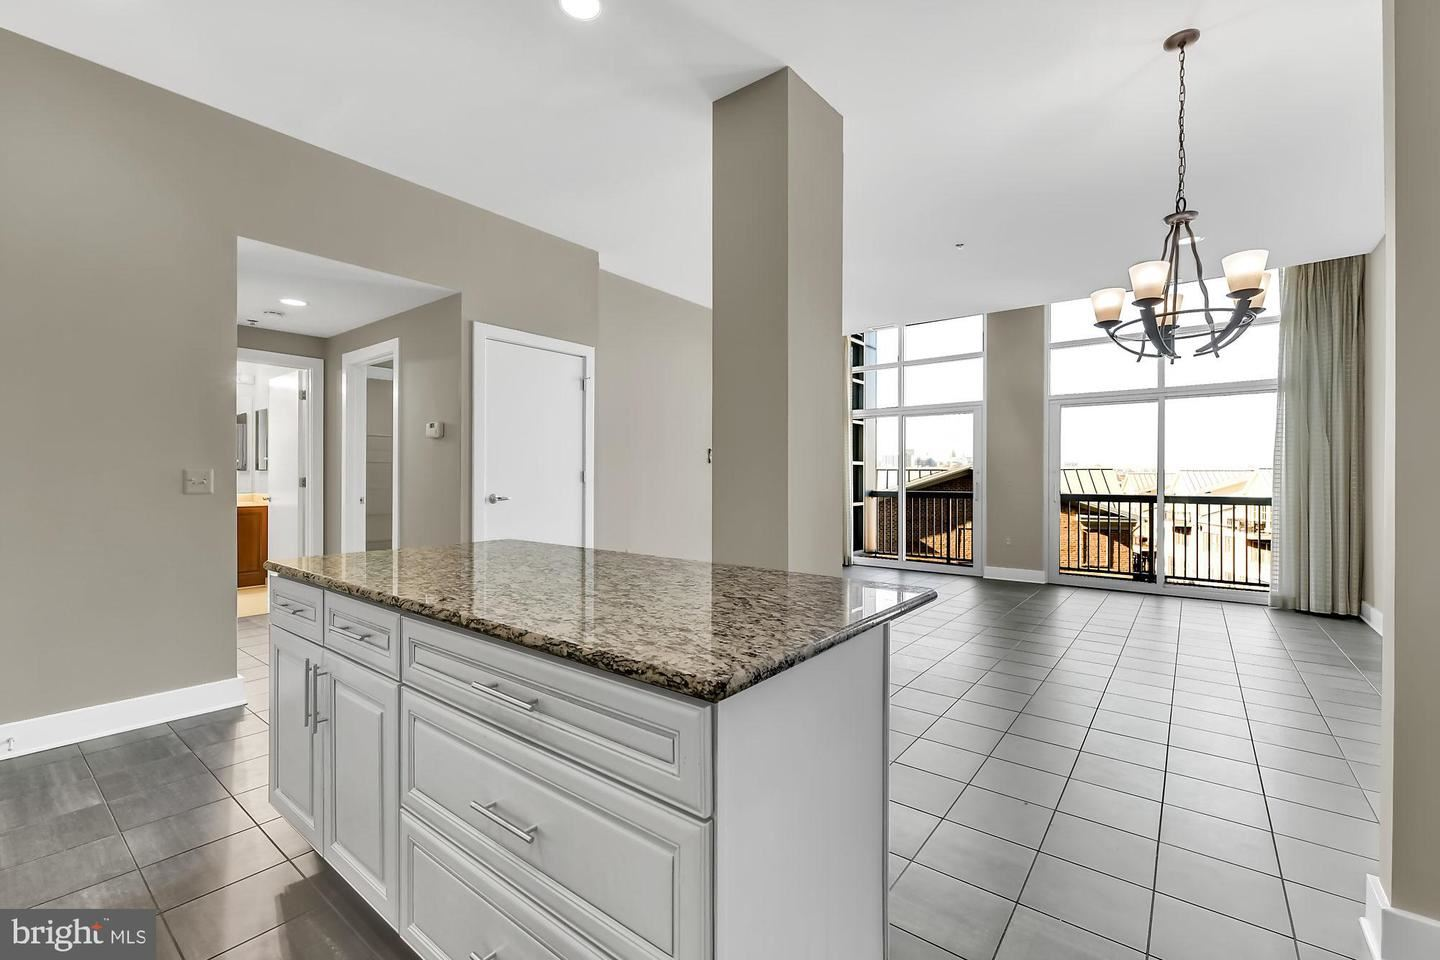 2772 LIGHTHOUSE POINT EAST #409, Baltimore, MD 21224 - MLS#: MDBA493490